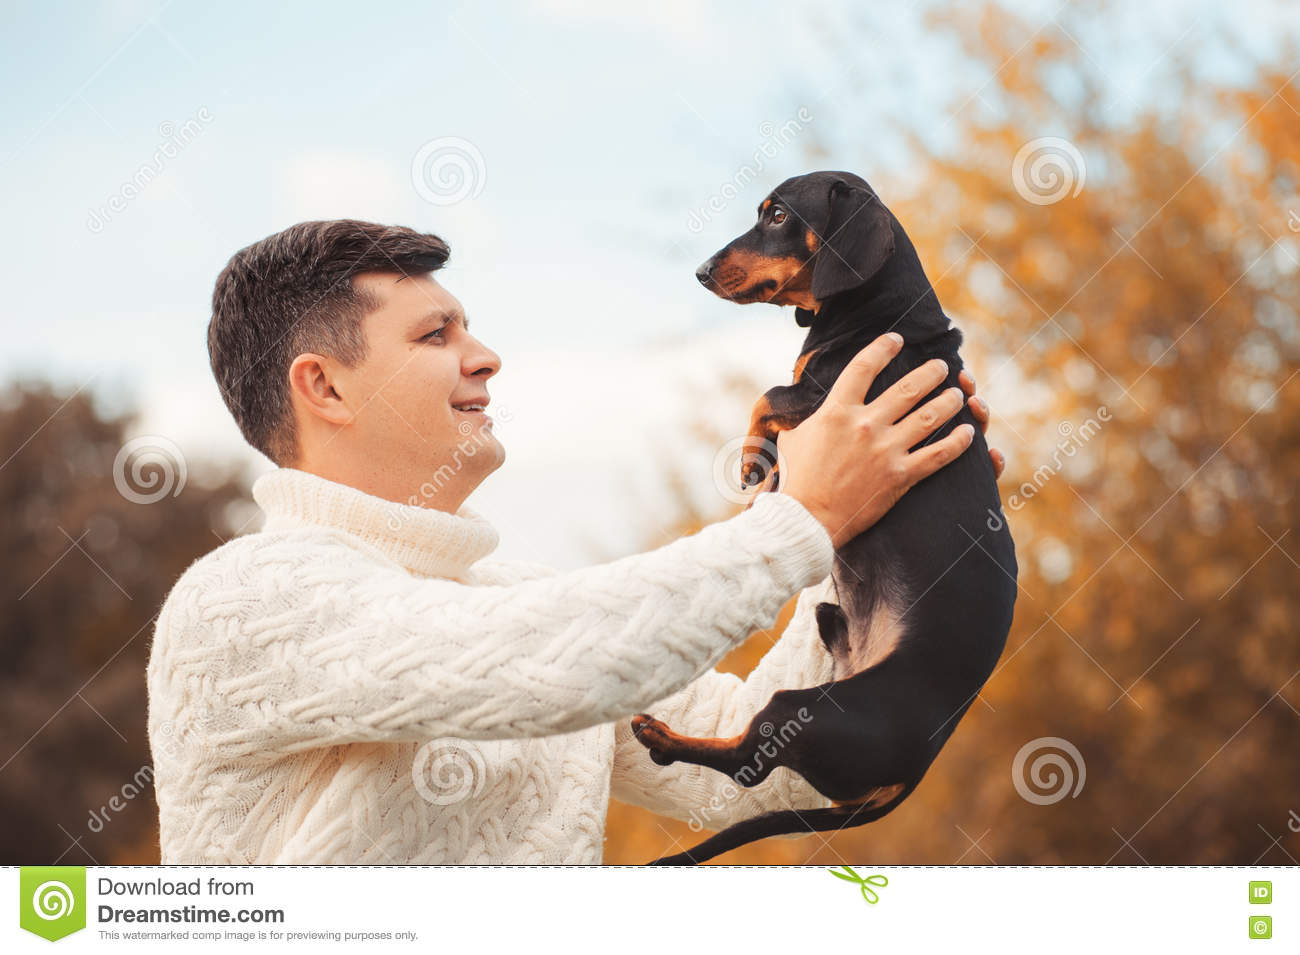 Cute dog and his owner young handsome man have fun in the park, conceptions animals, pets